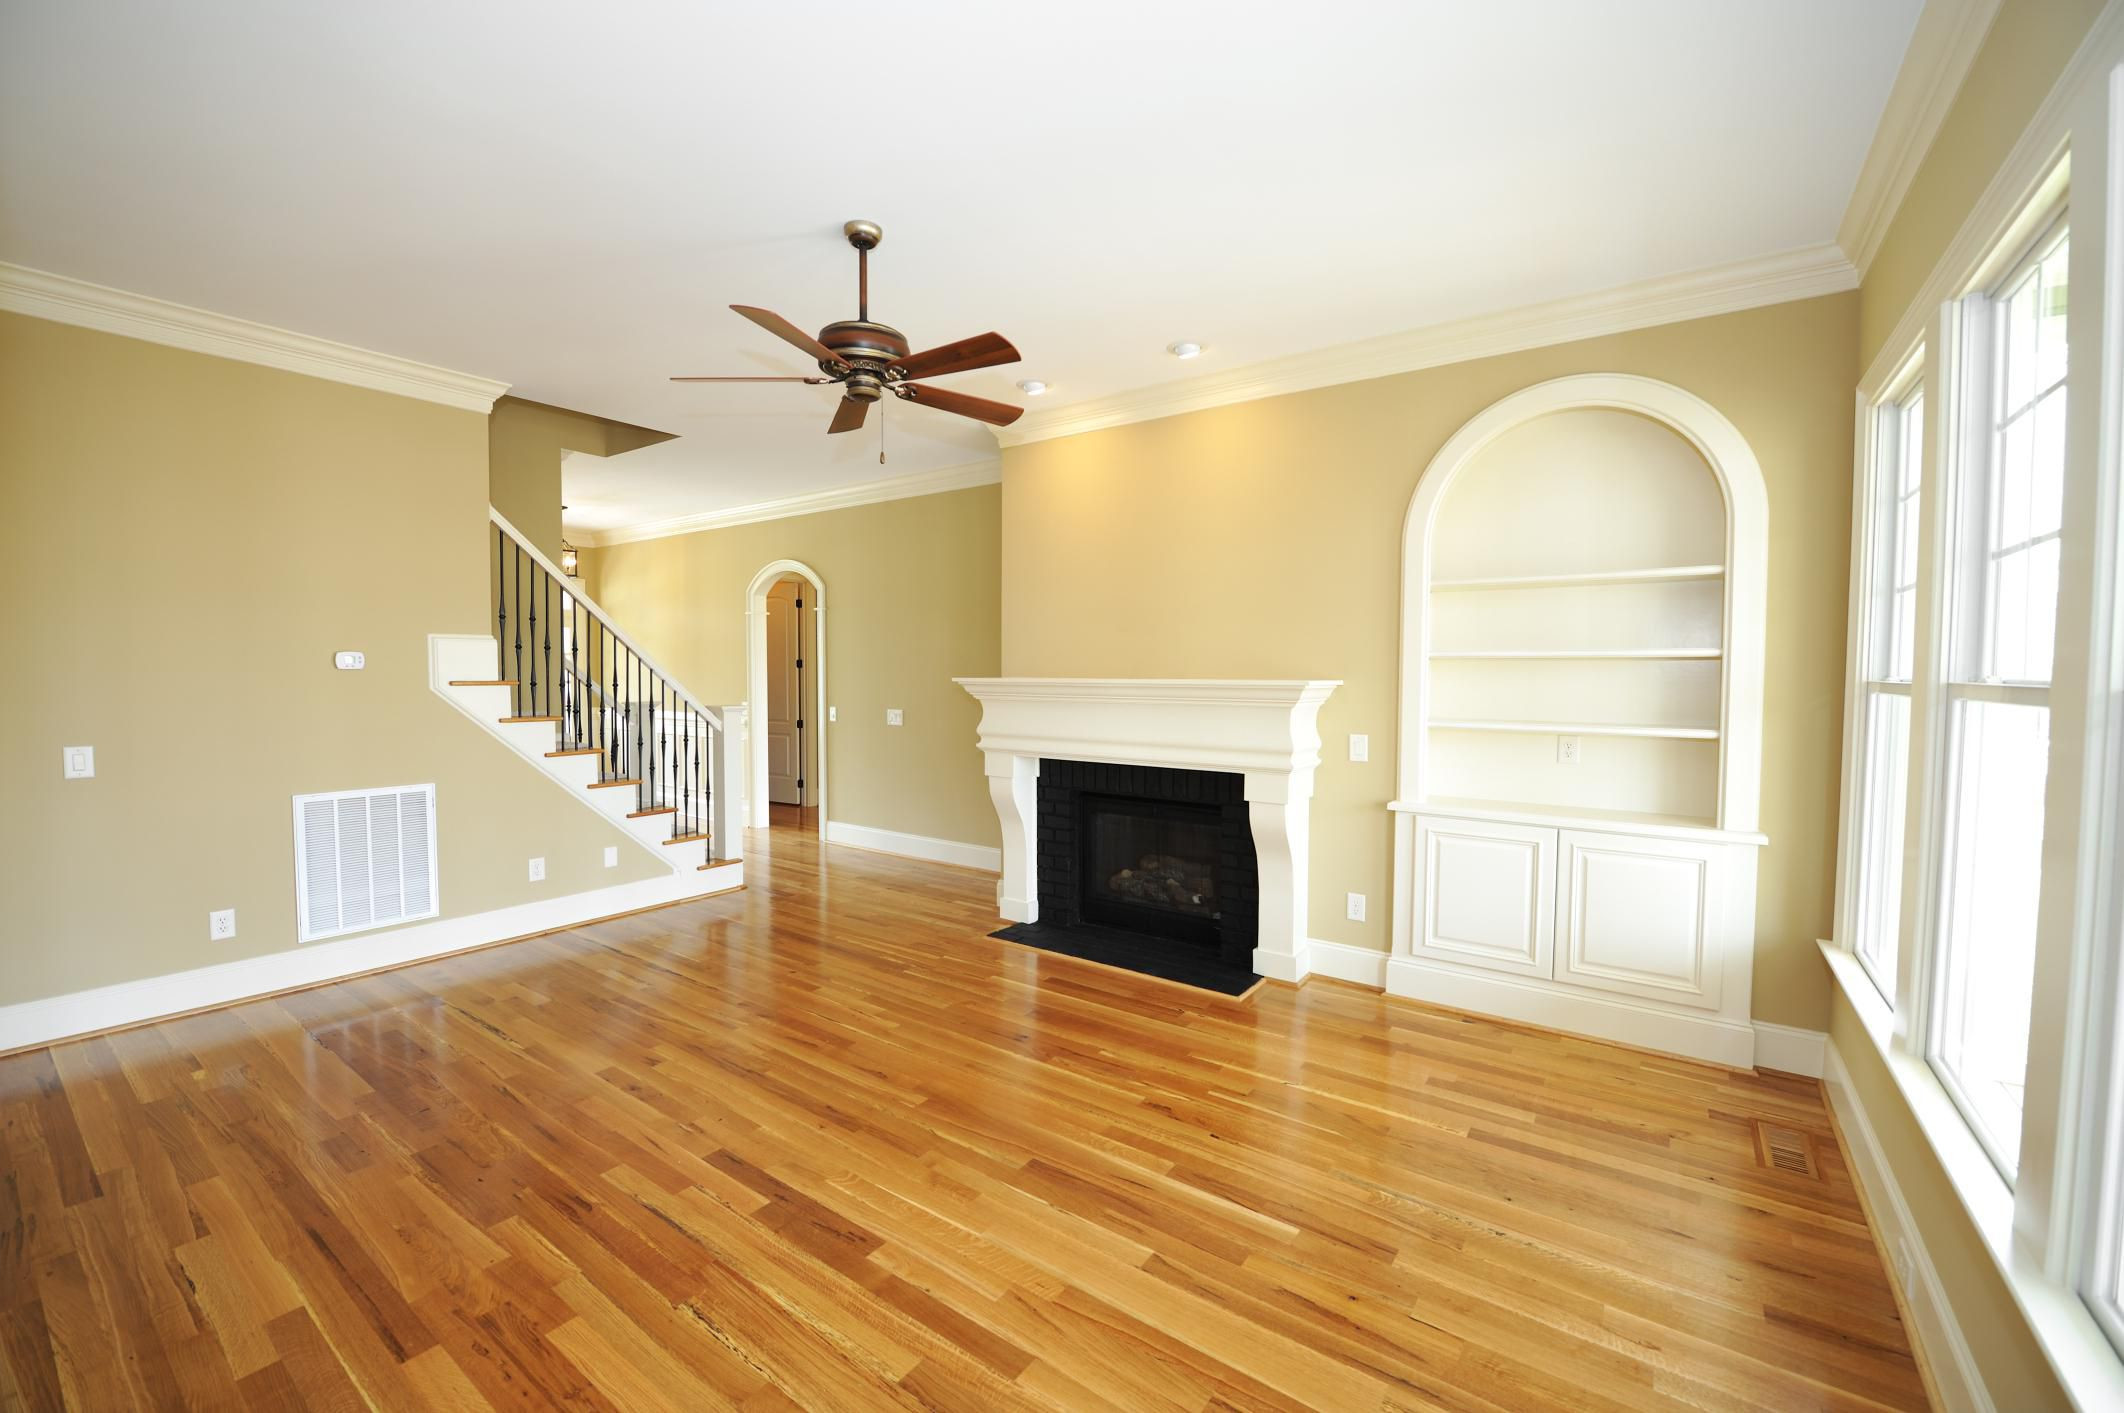 how to refinish maple hardwood floors of solid and engineered wood flooring intended for 157328869 56a4a2ac5f9b58b7d0d7ef49